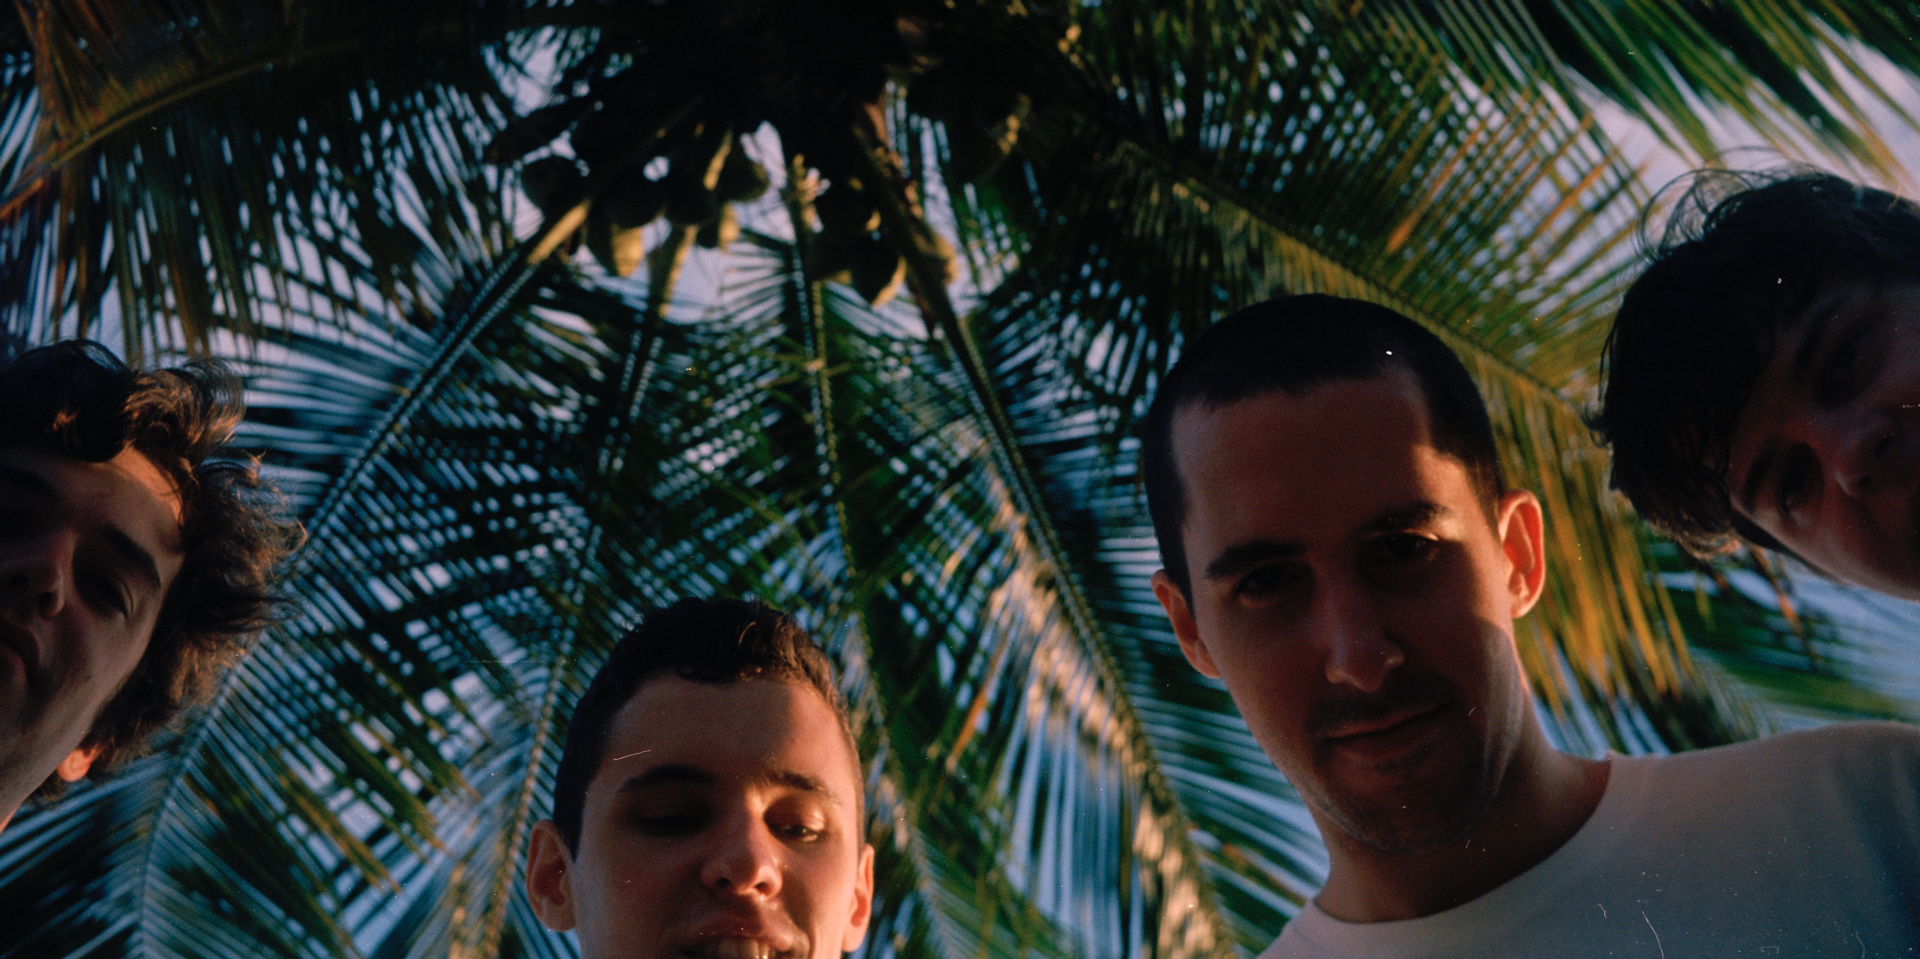 """""""Improvising as a band has always been a positive experience"""": An interview with BADBADNOTGOOD"""